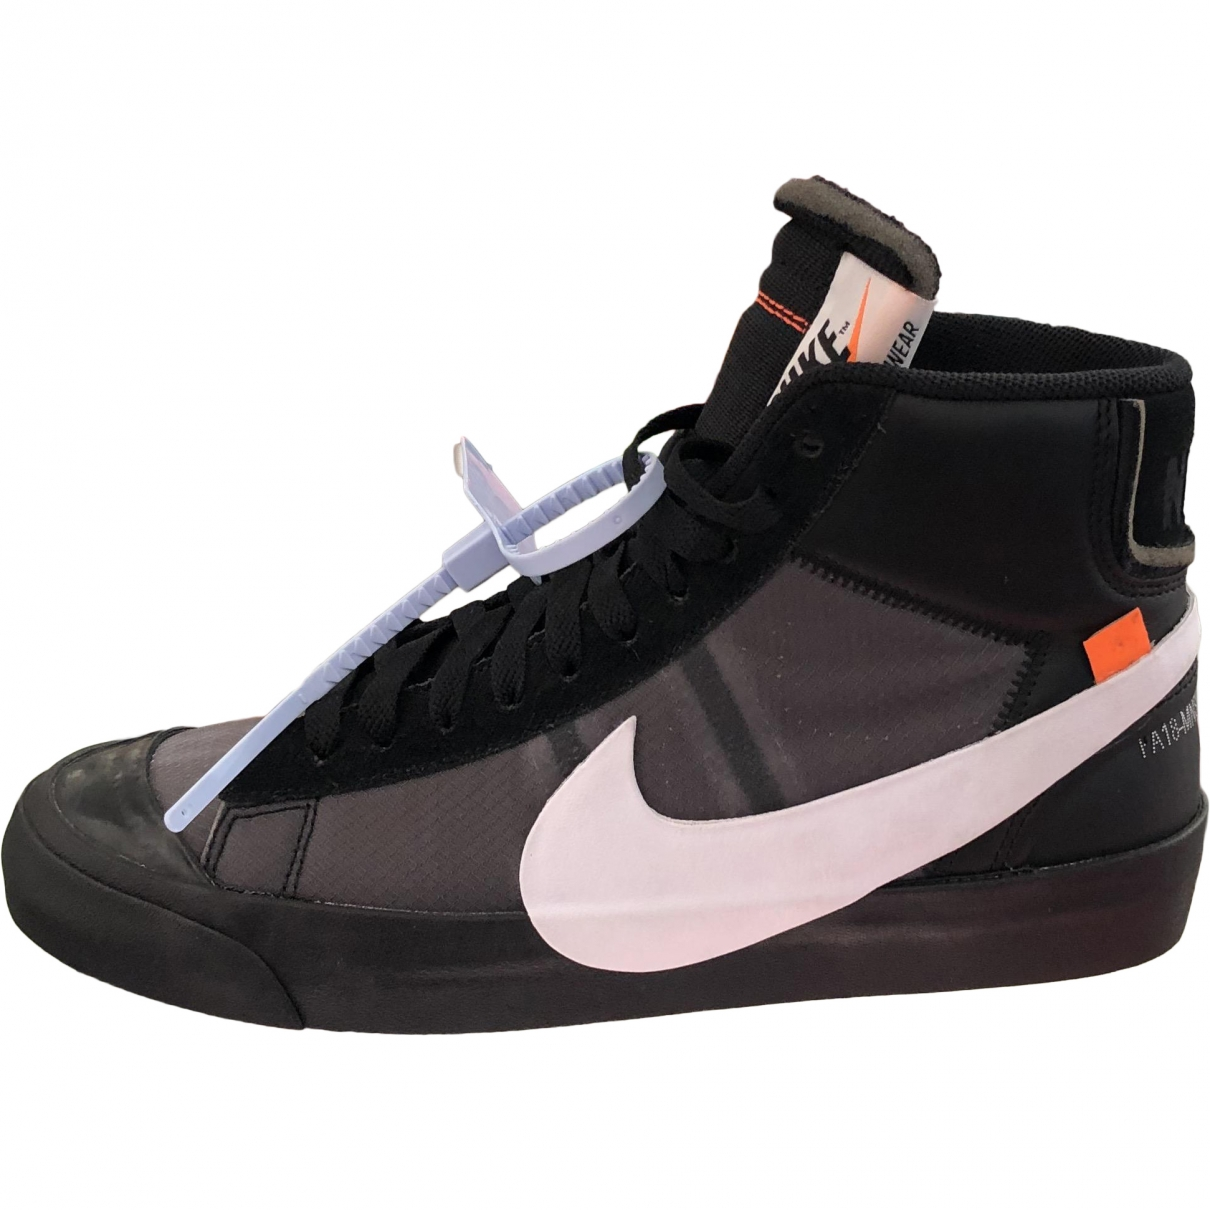 Nike X Off-white Blazer Mid Black Leather Trainers for Men 8 US